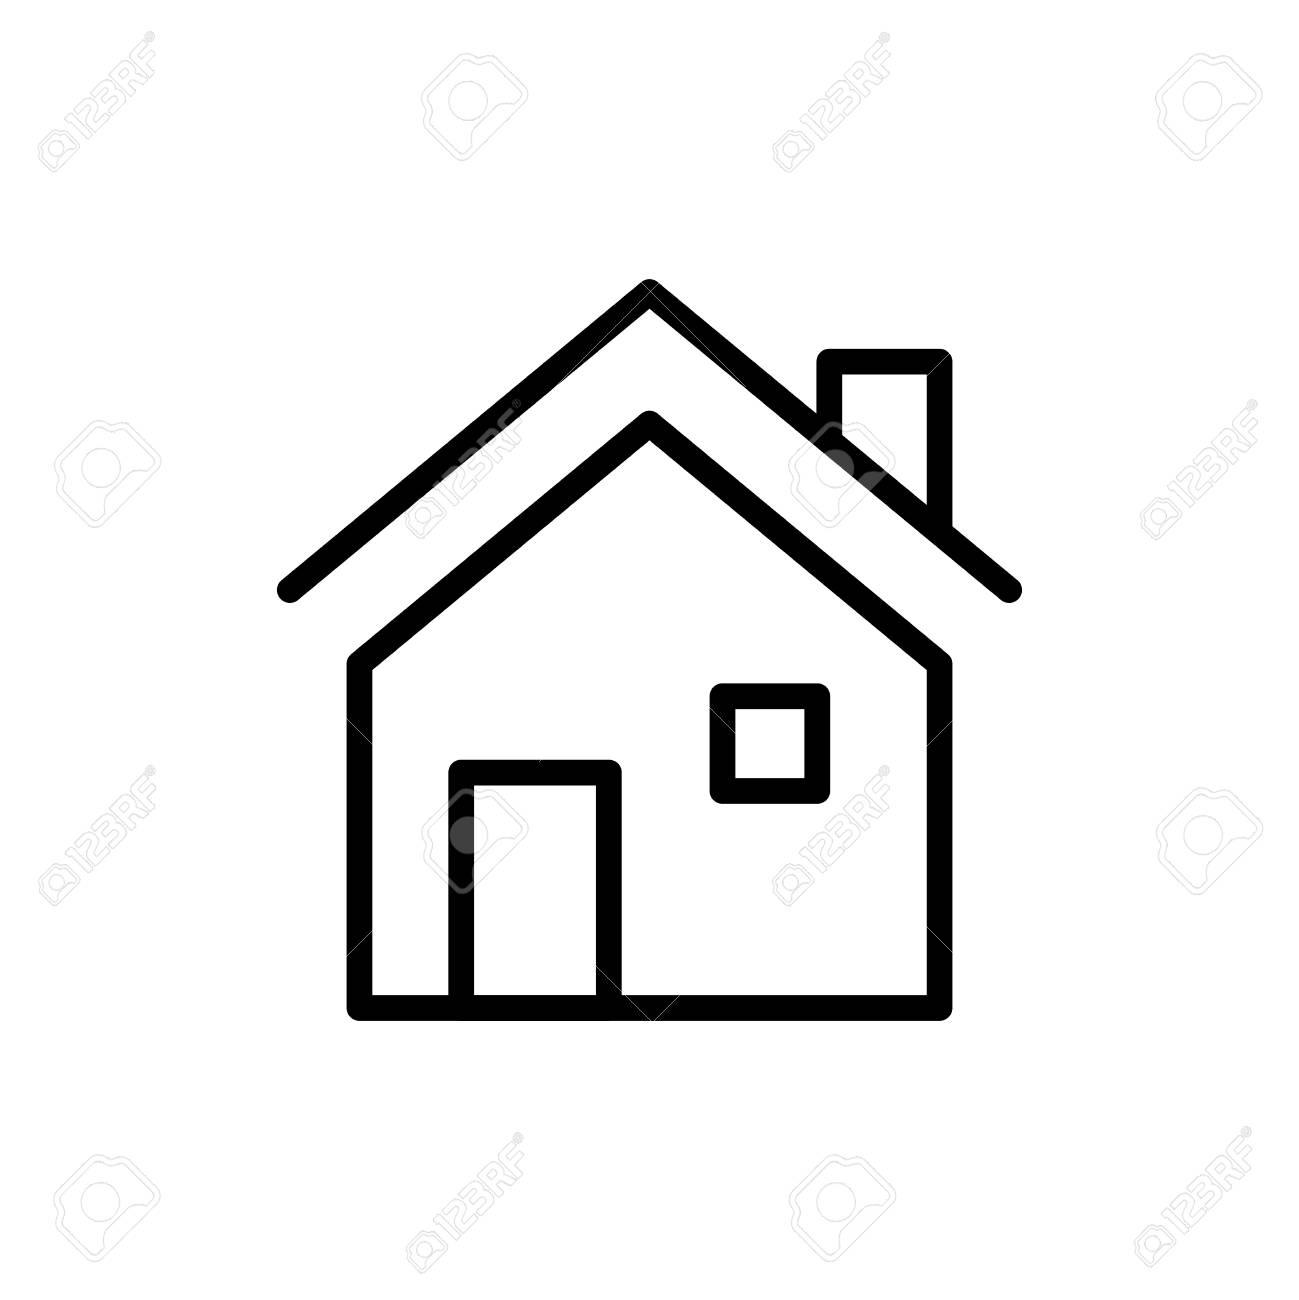 Premium Home Icon Or Logo In Line Style On A White Background Royalty Free Cliparts Vectors And Stock Illustration Image 83685345